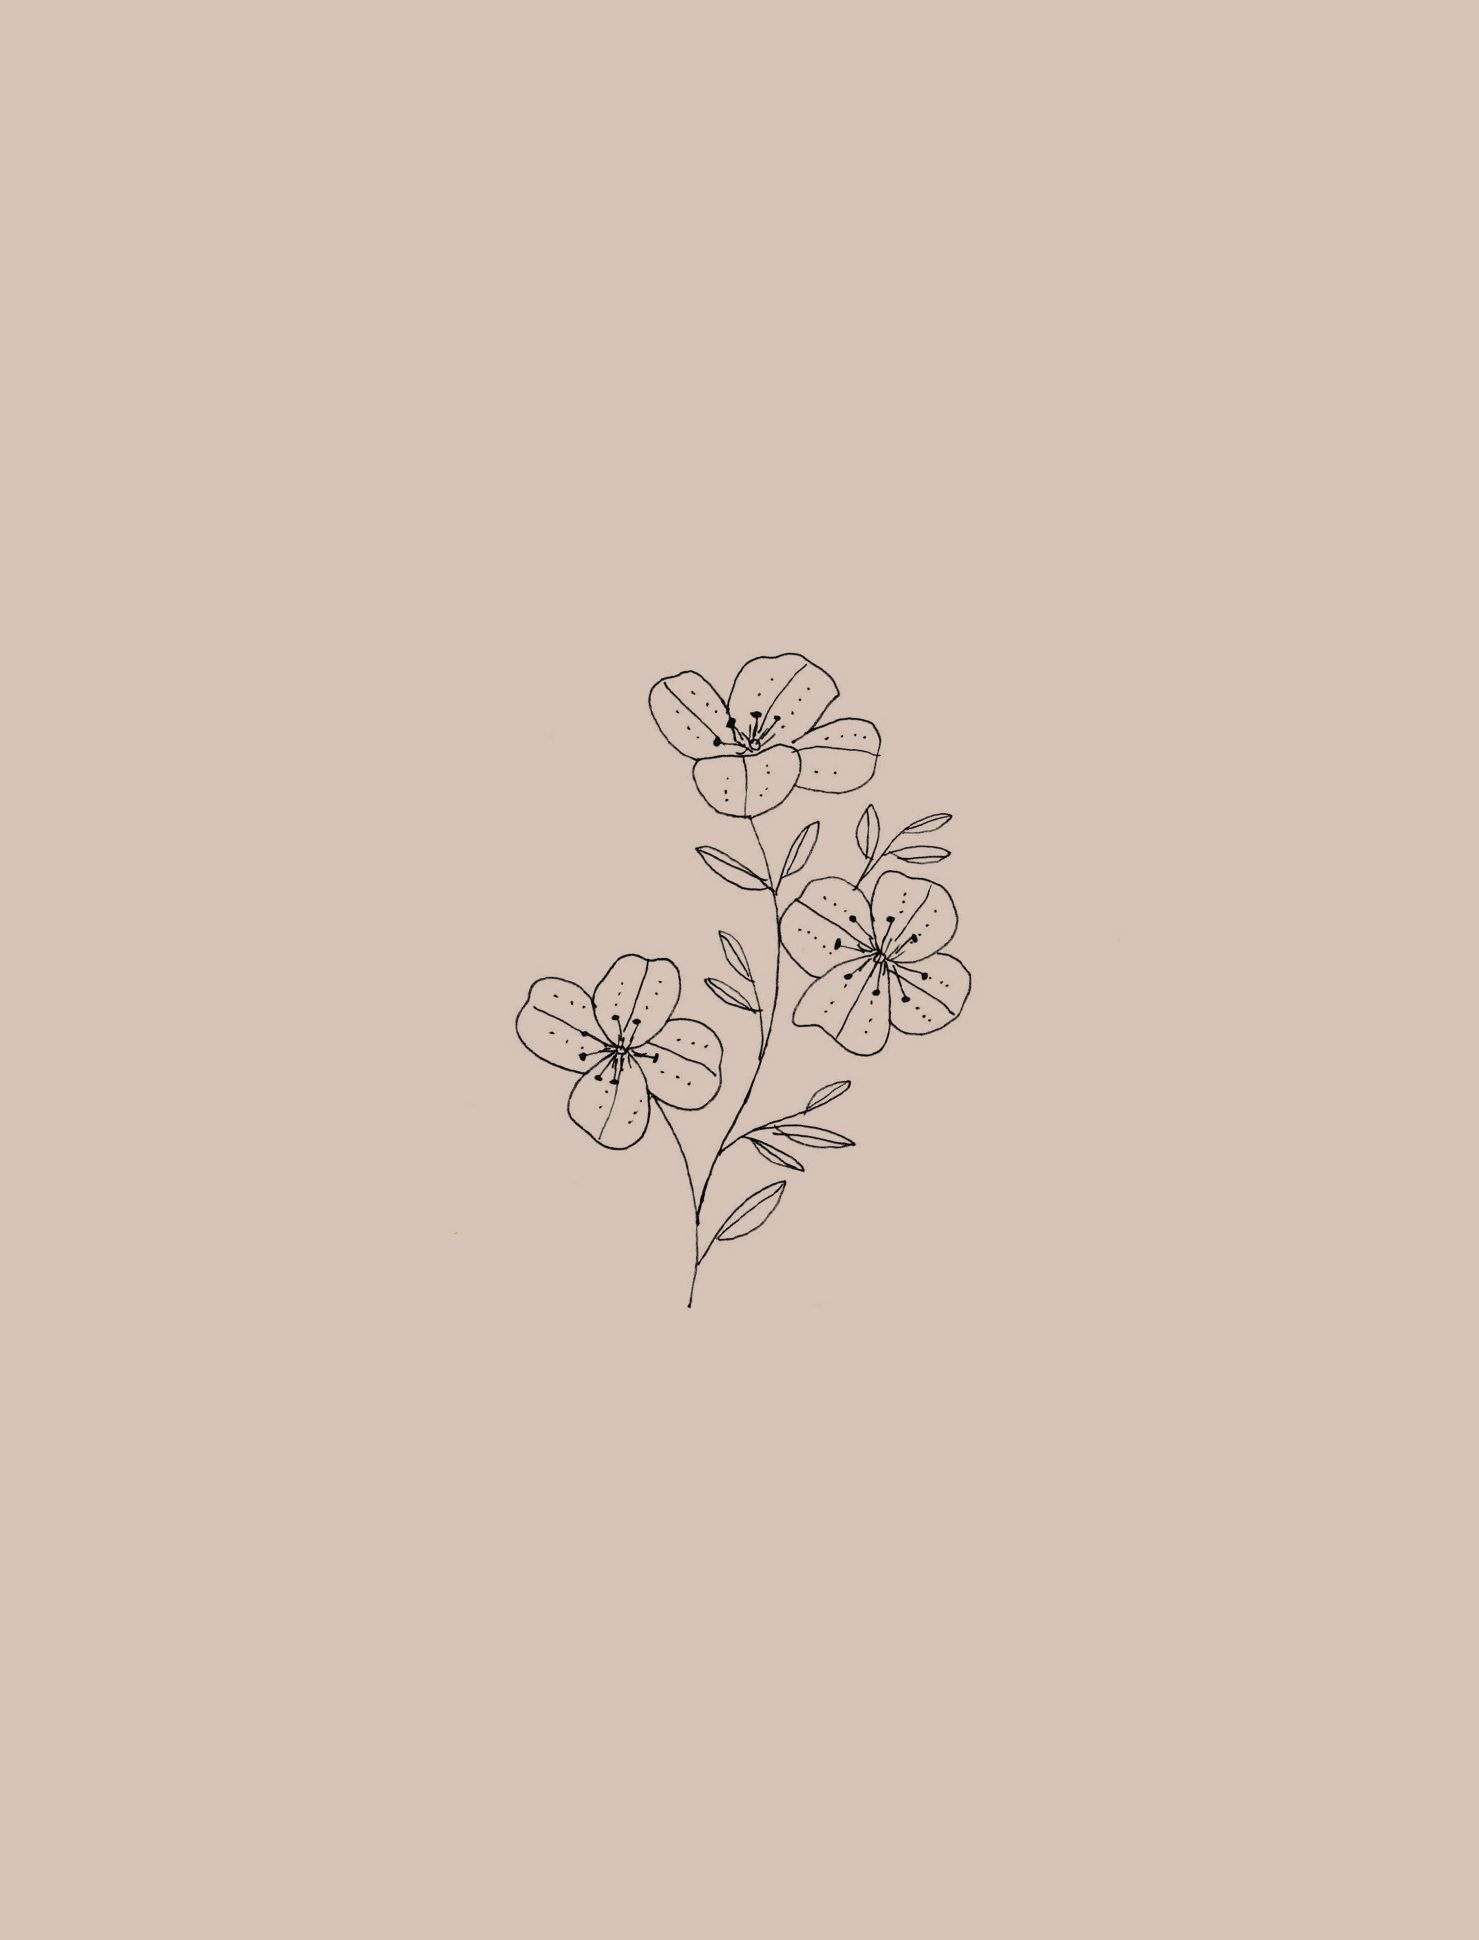 Aesthetic Flower Drawing Wallpapers